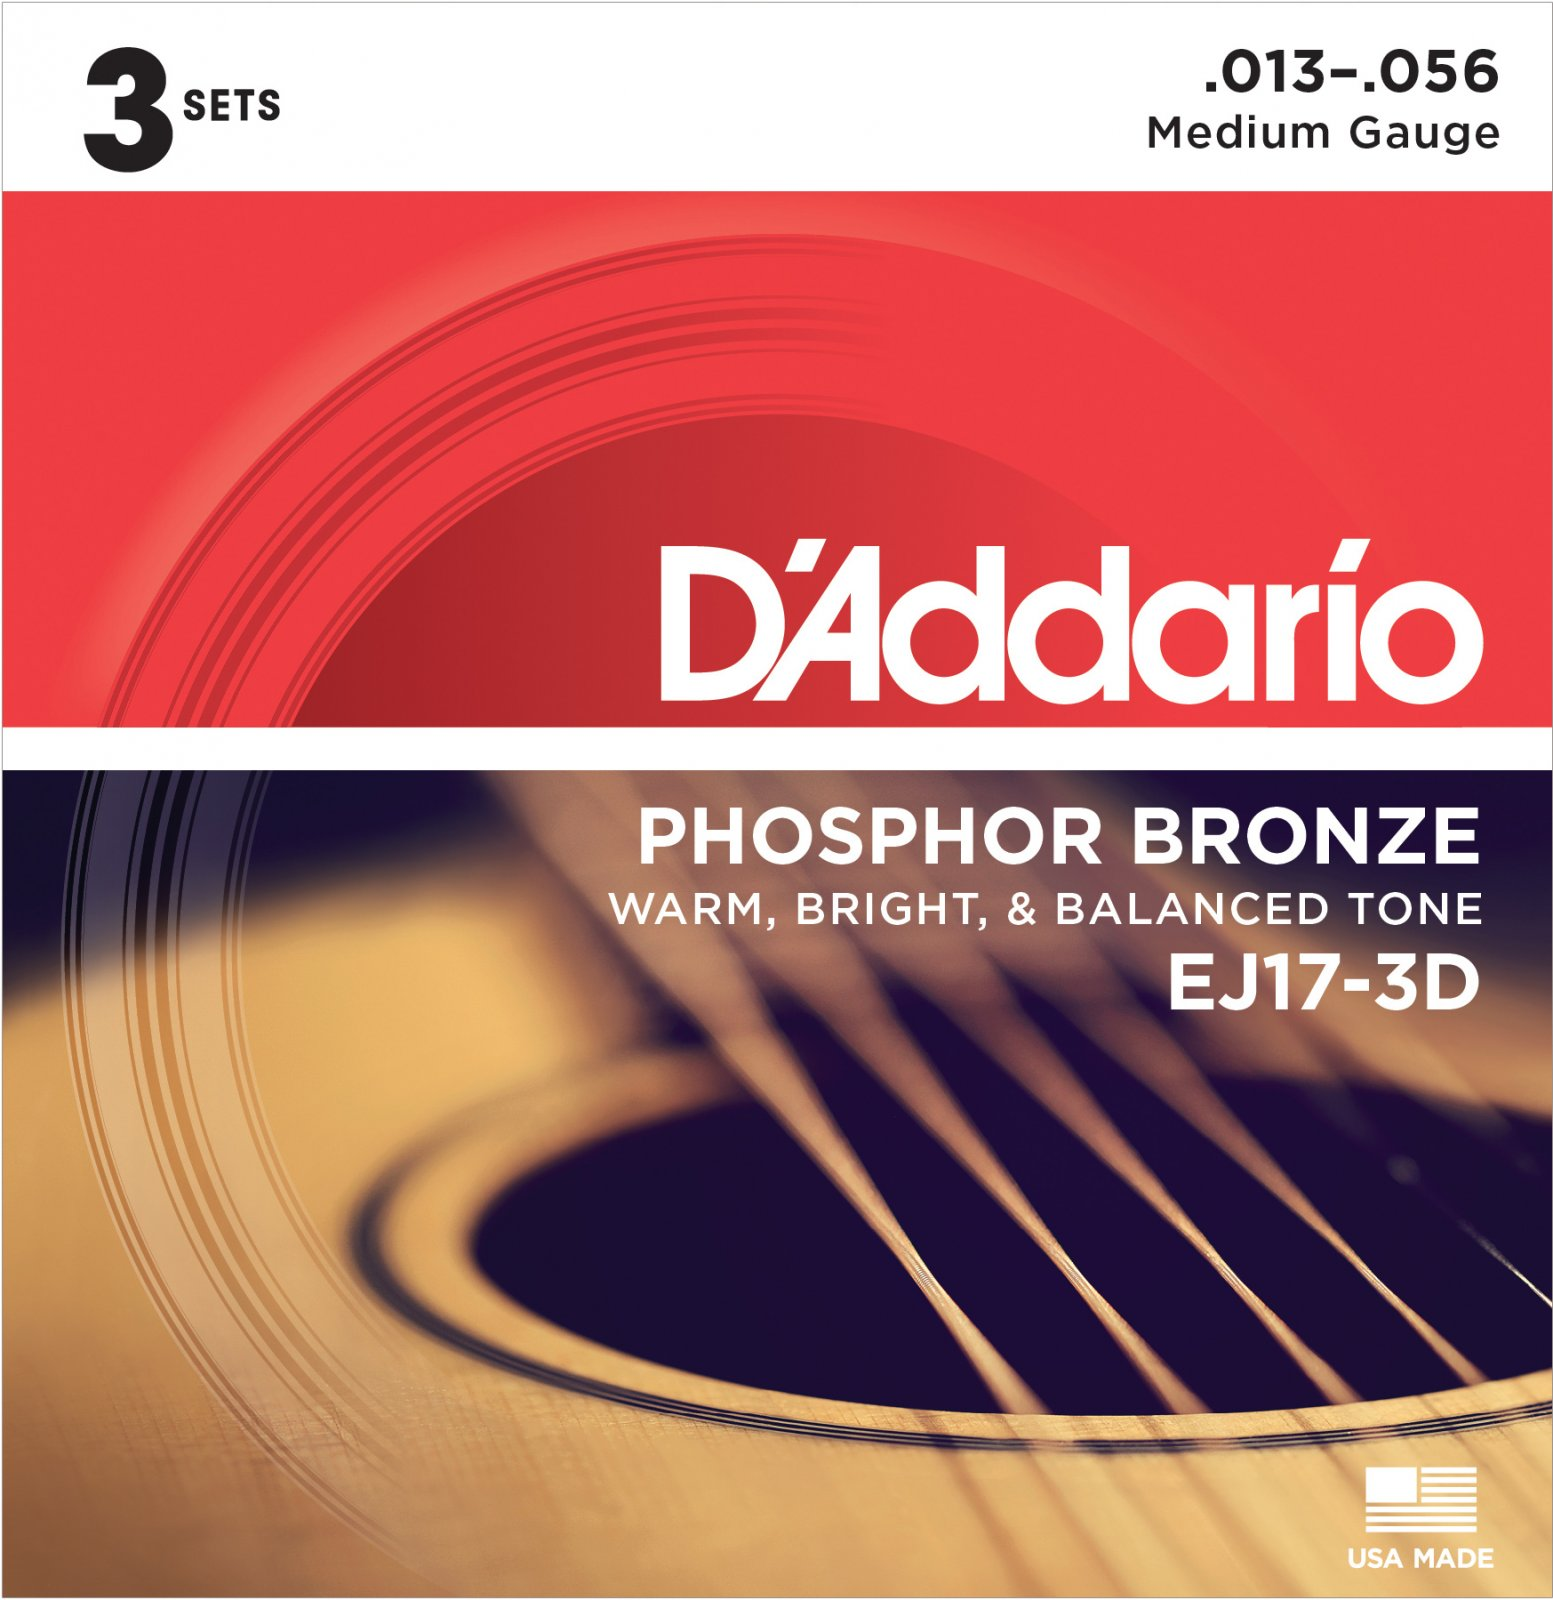 D'Addario EJ17-3D Value Pack Phosphor Bronze Acoustic Guitar Strings 3 Set Medium 13-56